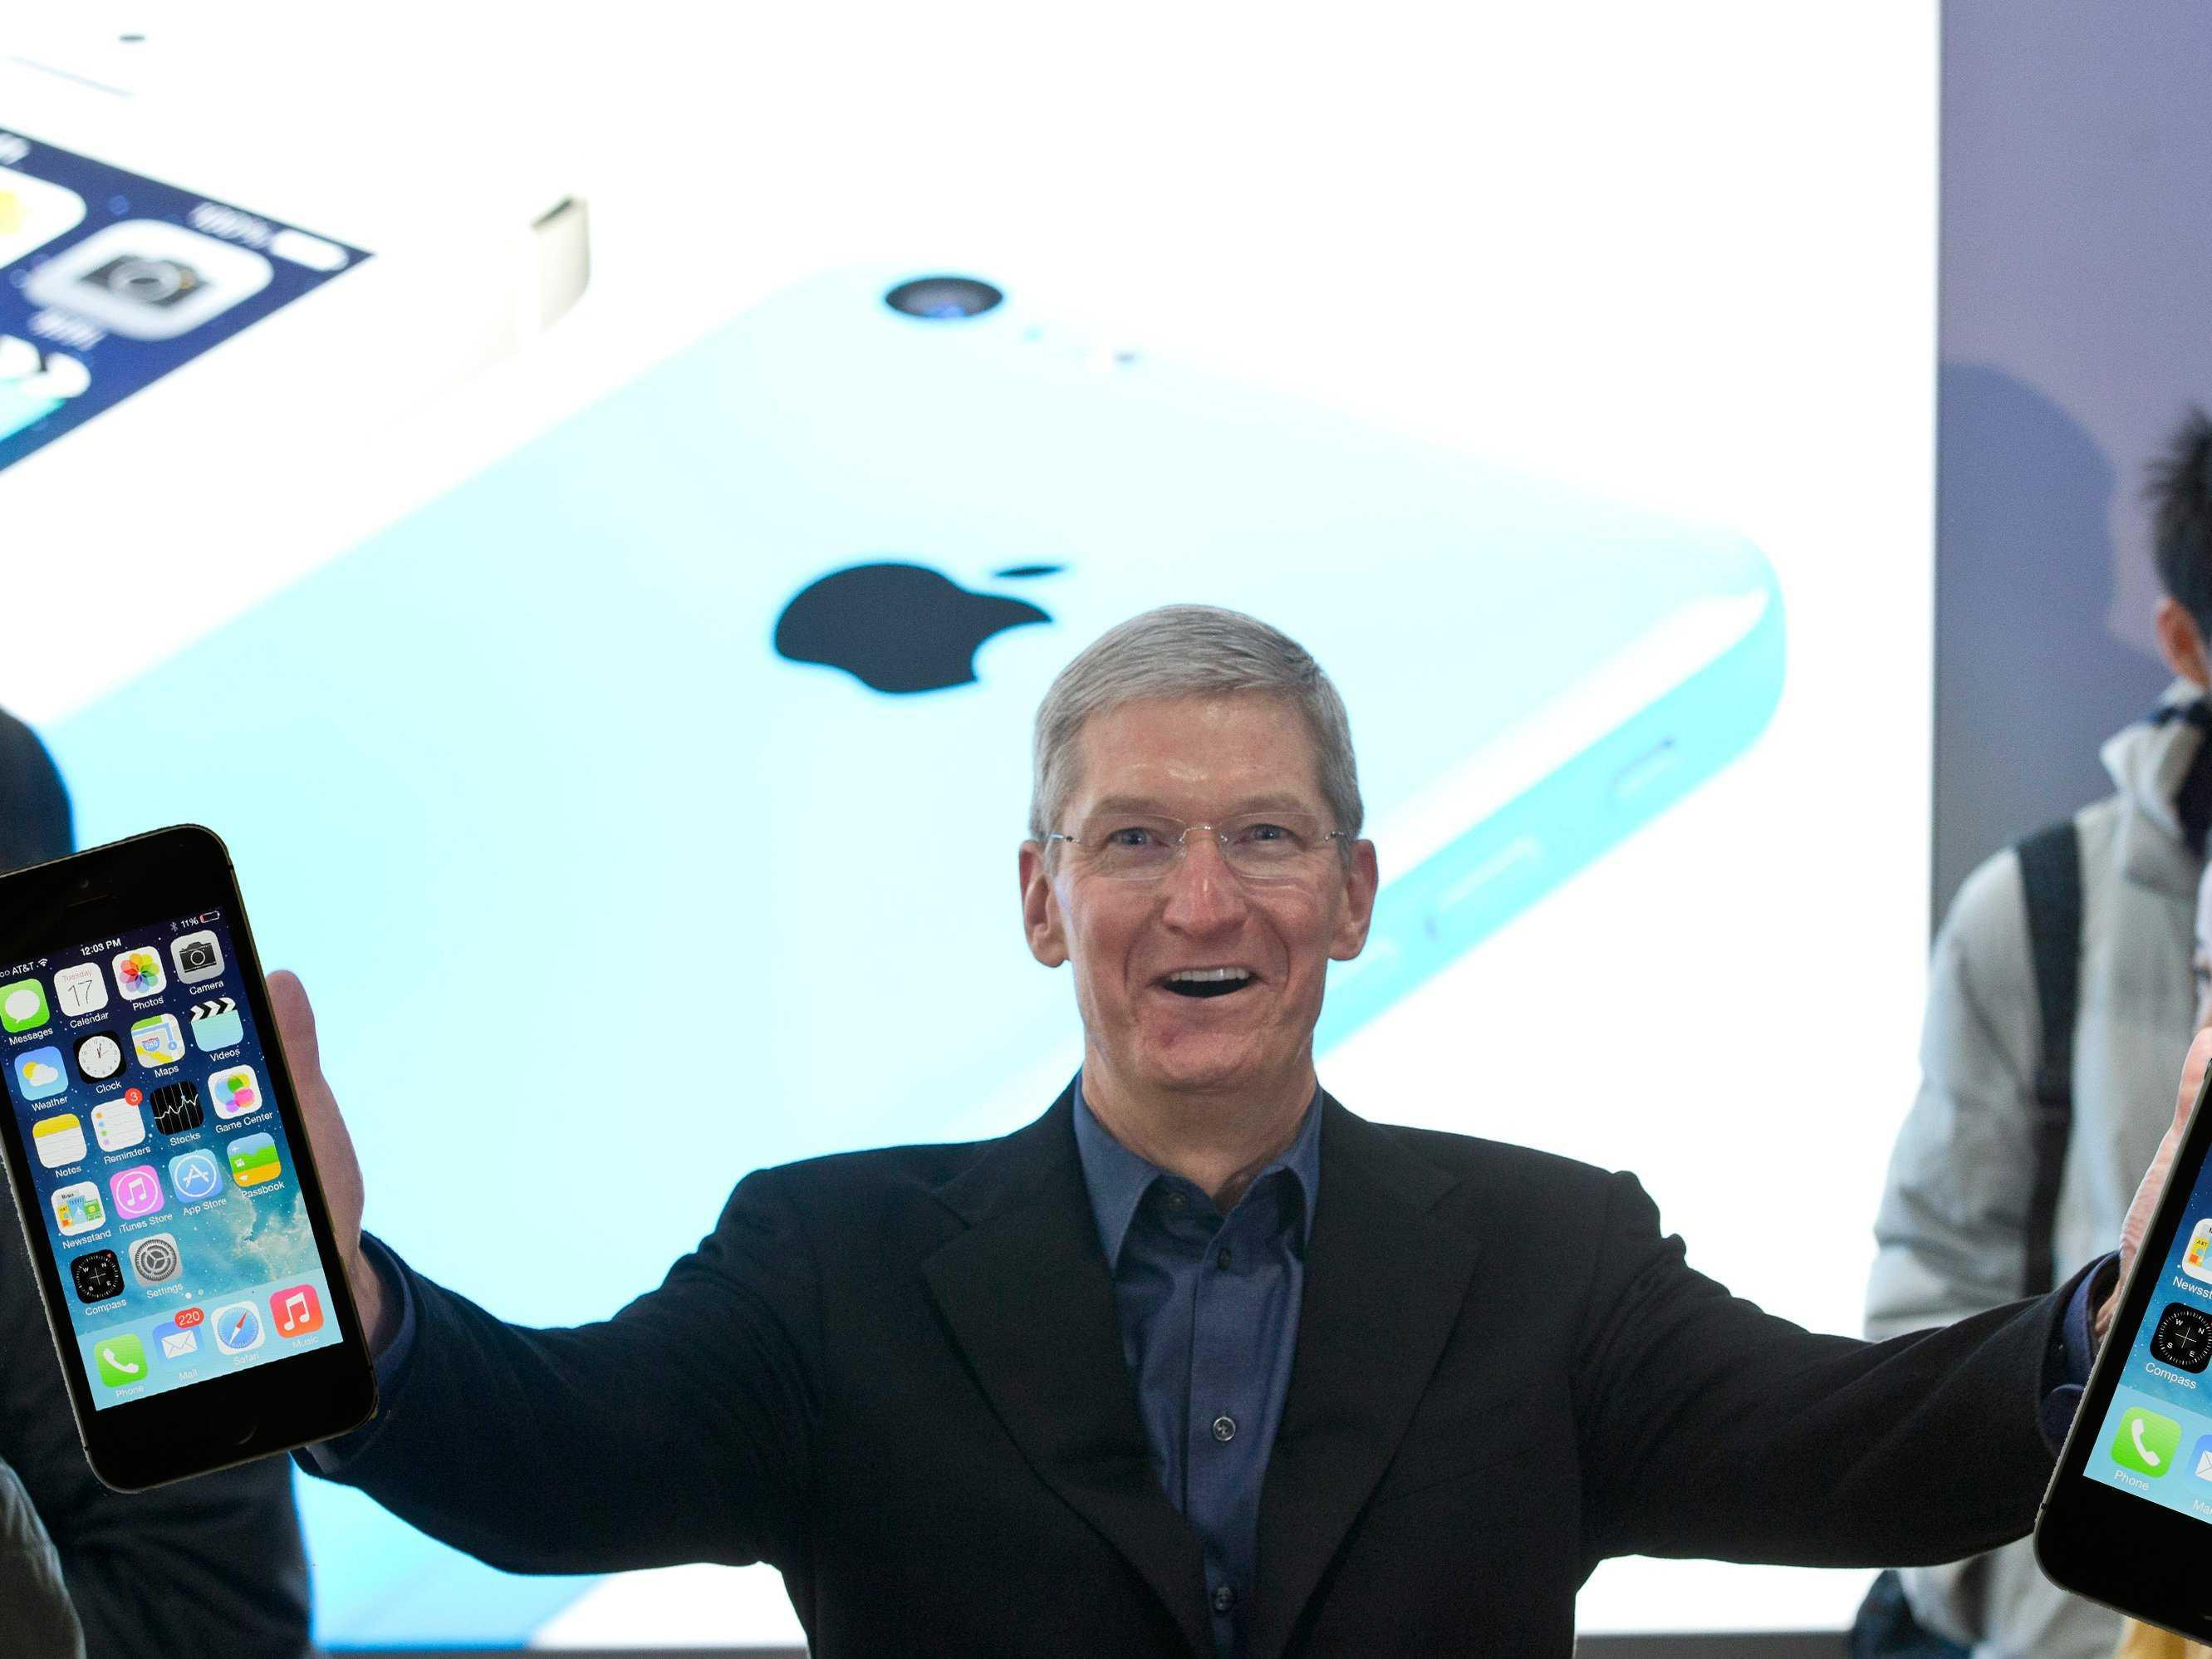 scenario planning for apple The contact claims that apple plans to phase out the ipad mini now  the ipad  mini -- it just wouldn't get further updates under this scenario.